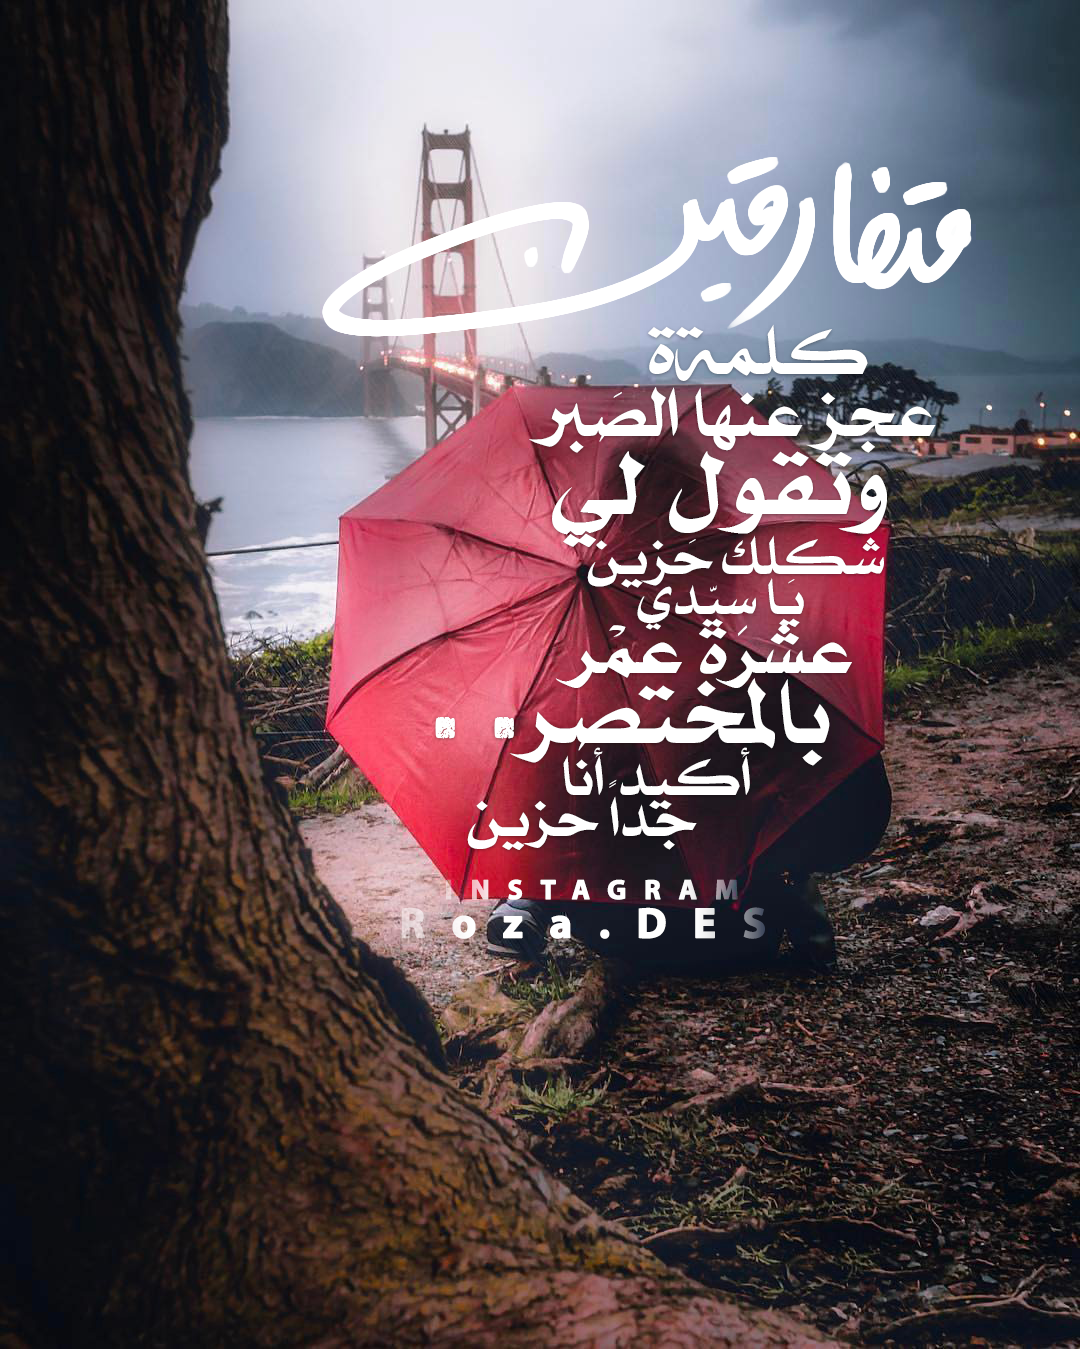 Pin By Ayat Murad On What I Like Instagram Photo And Video Photo